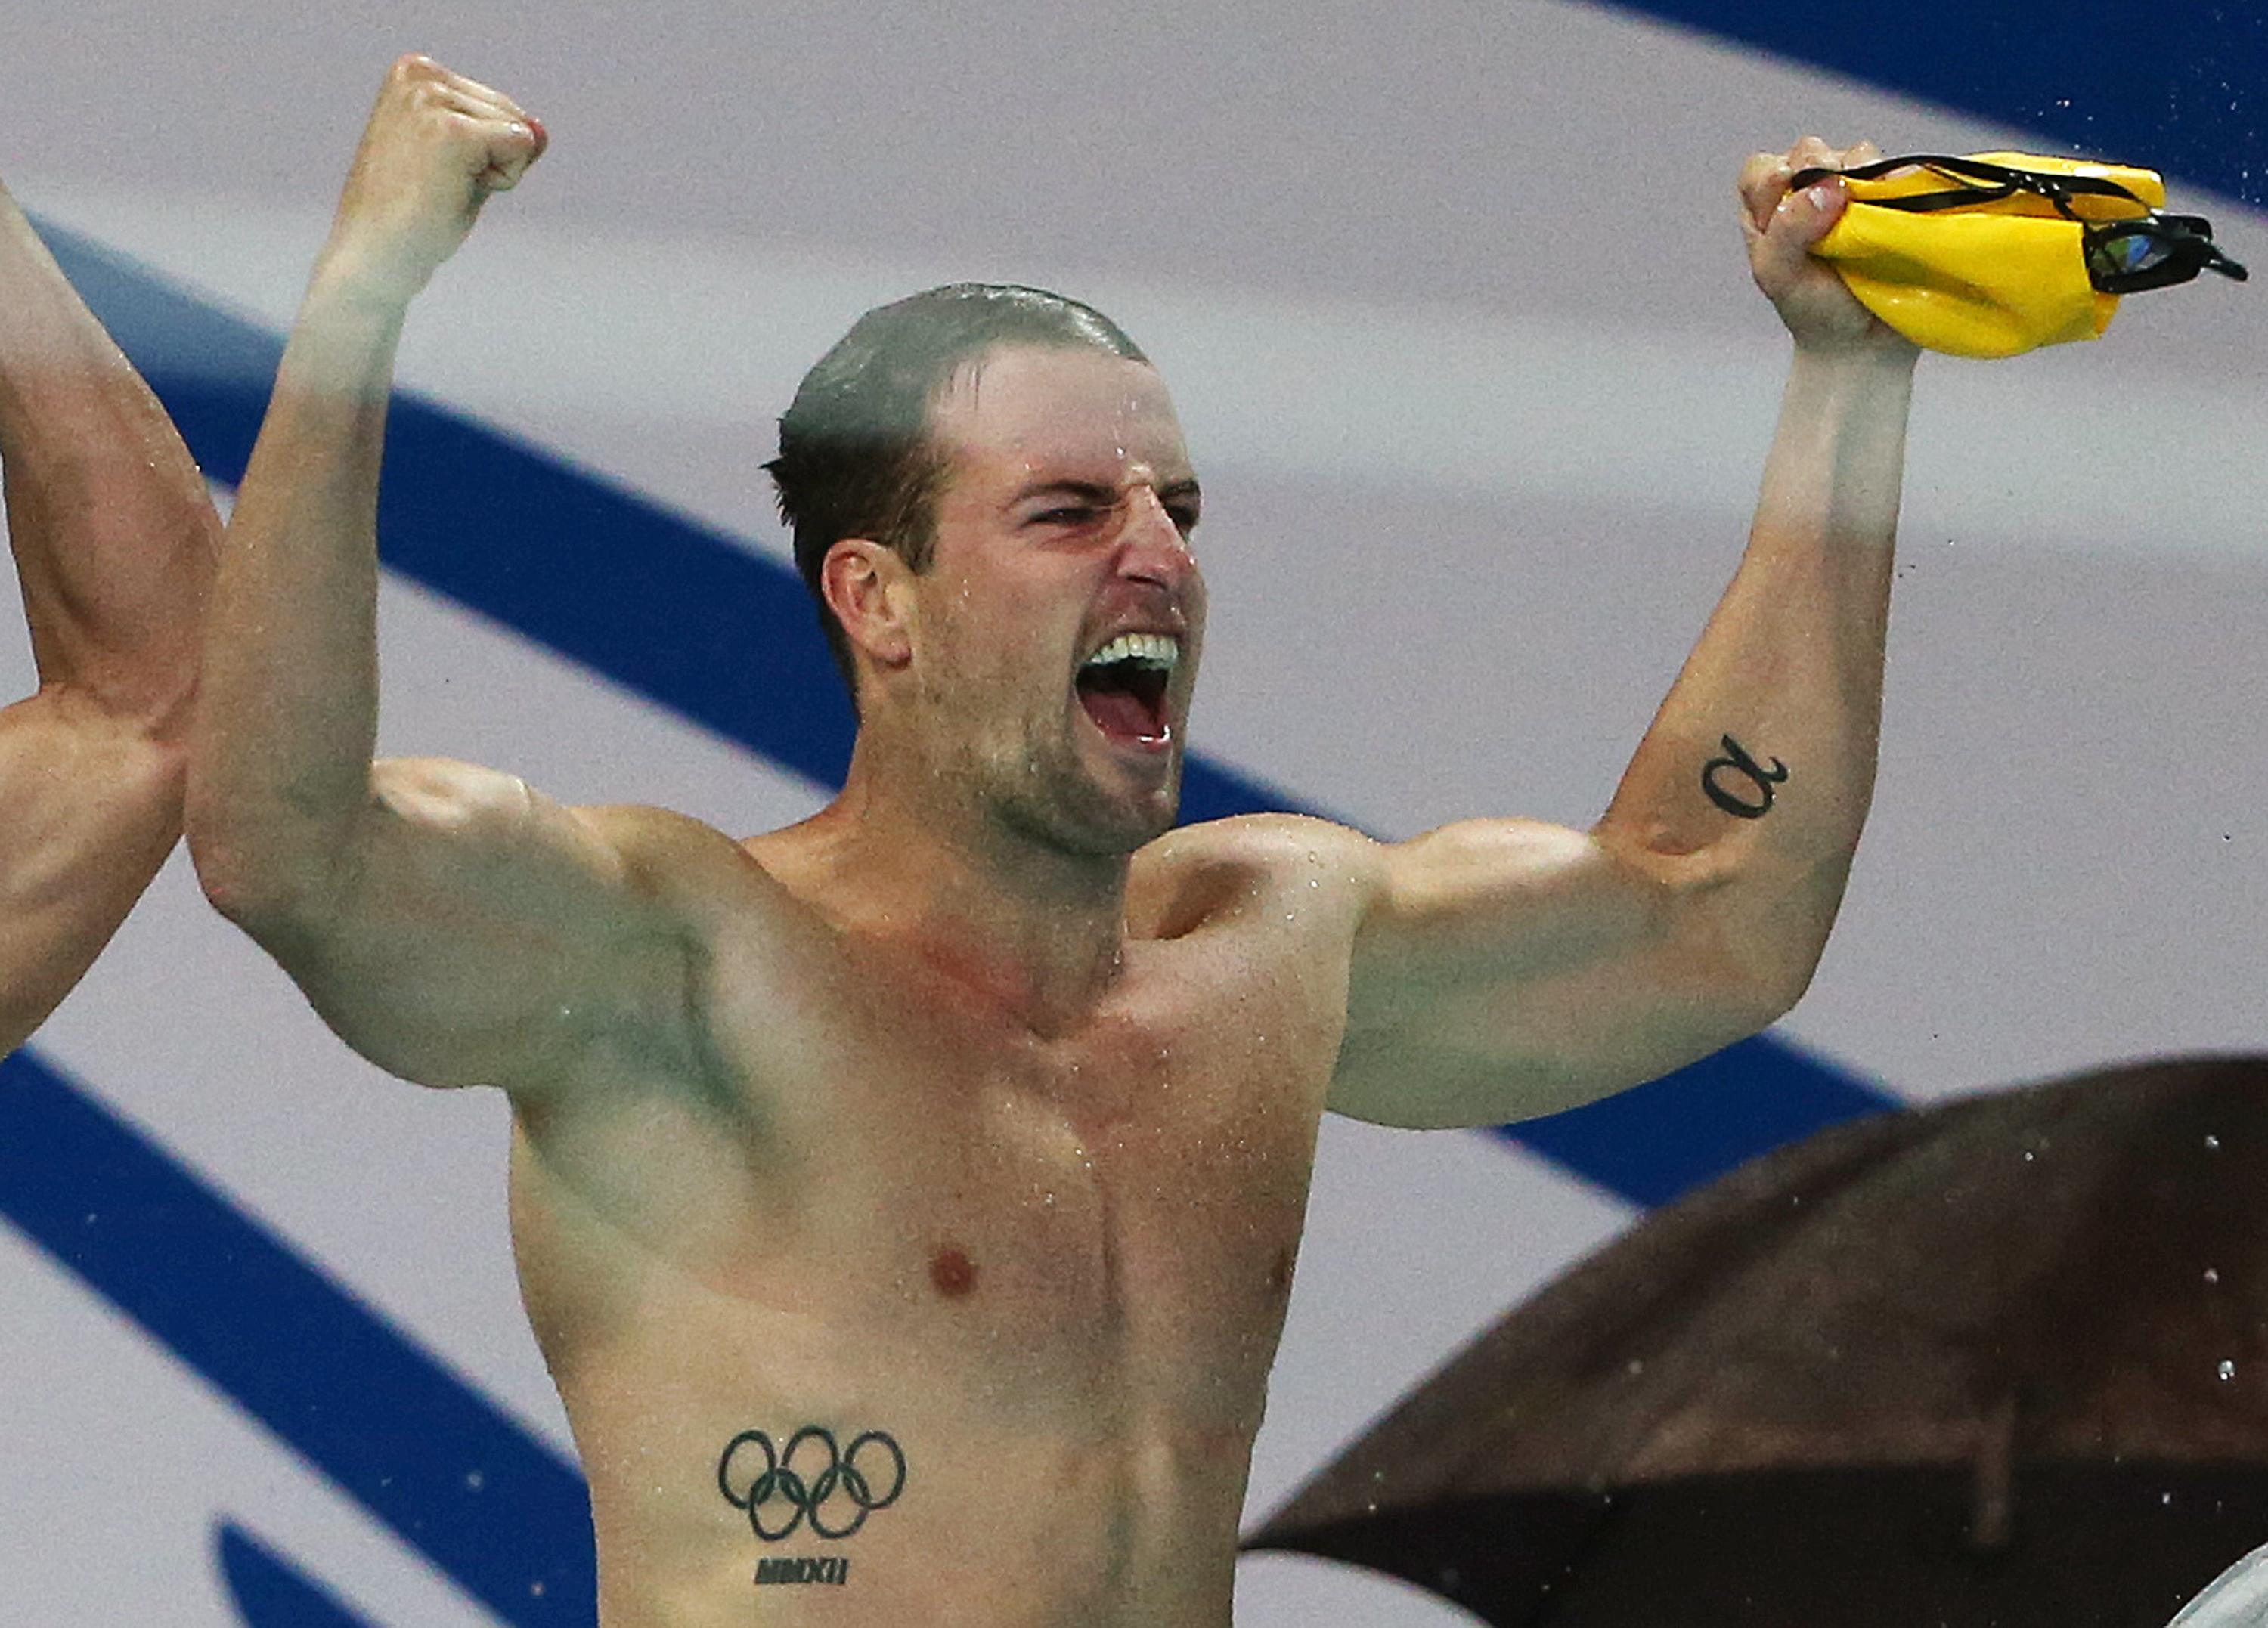 In this Aug. 23, 2014 photo, Australian men's relay team member James Magnussen celebrates winning the men's 4 x 100m freestyle final at the Pan Pacific swimming championships in Gold Coast, Australia. Two-time world champion Magnussen is a late addition